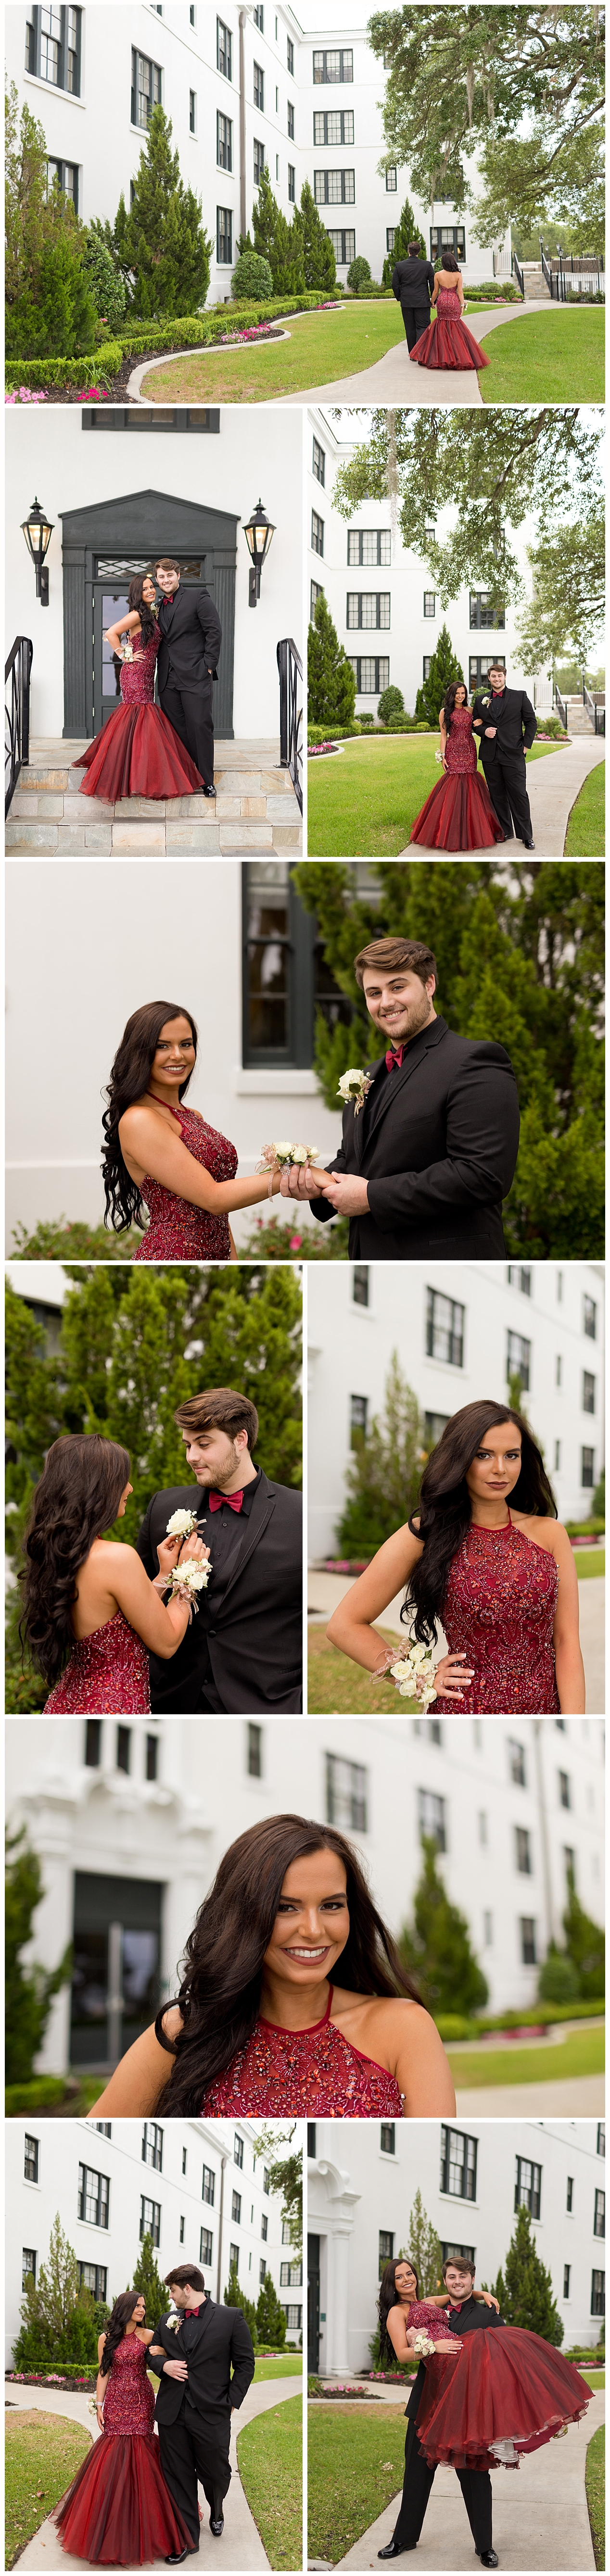 prom photographer in Biloxi, Mississippi - White House Hotel prom pictures